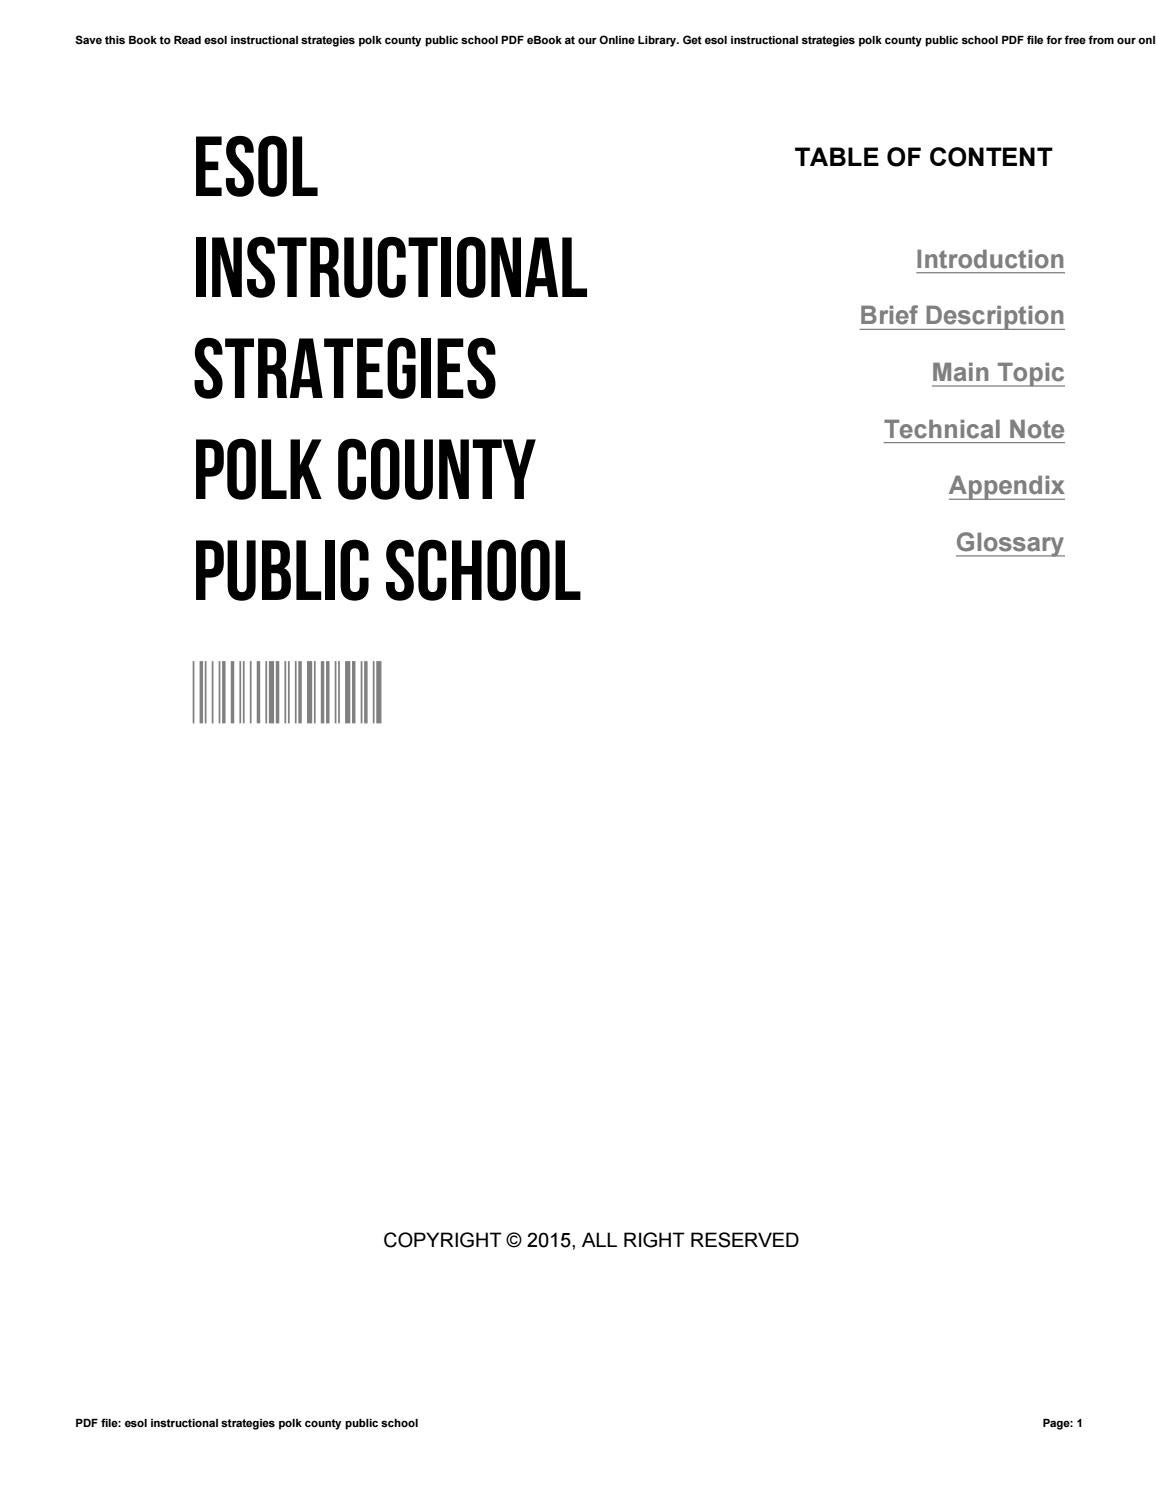 Esol instructional strategies polk county public school by